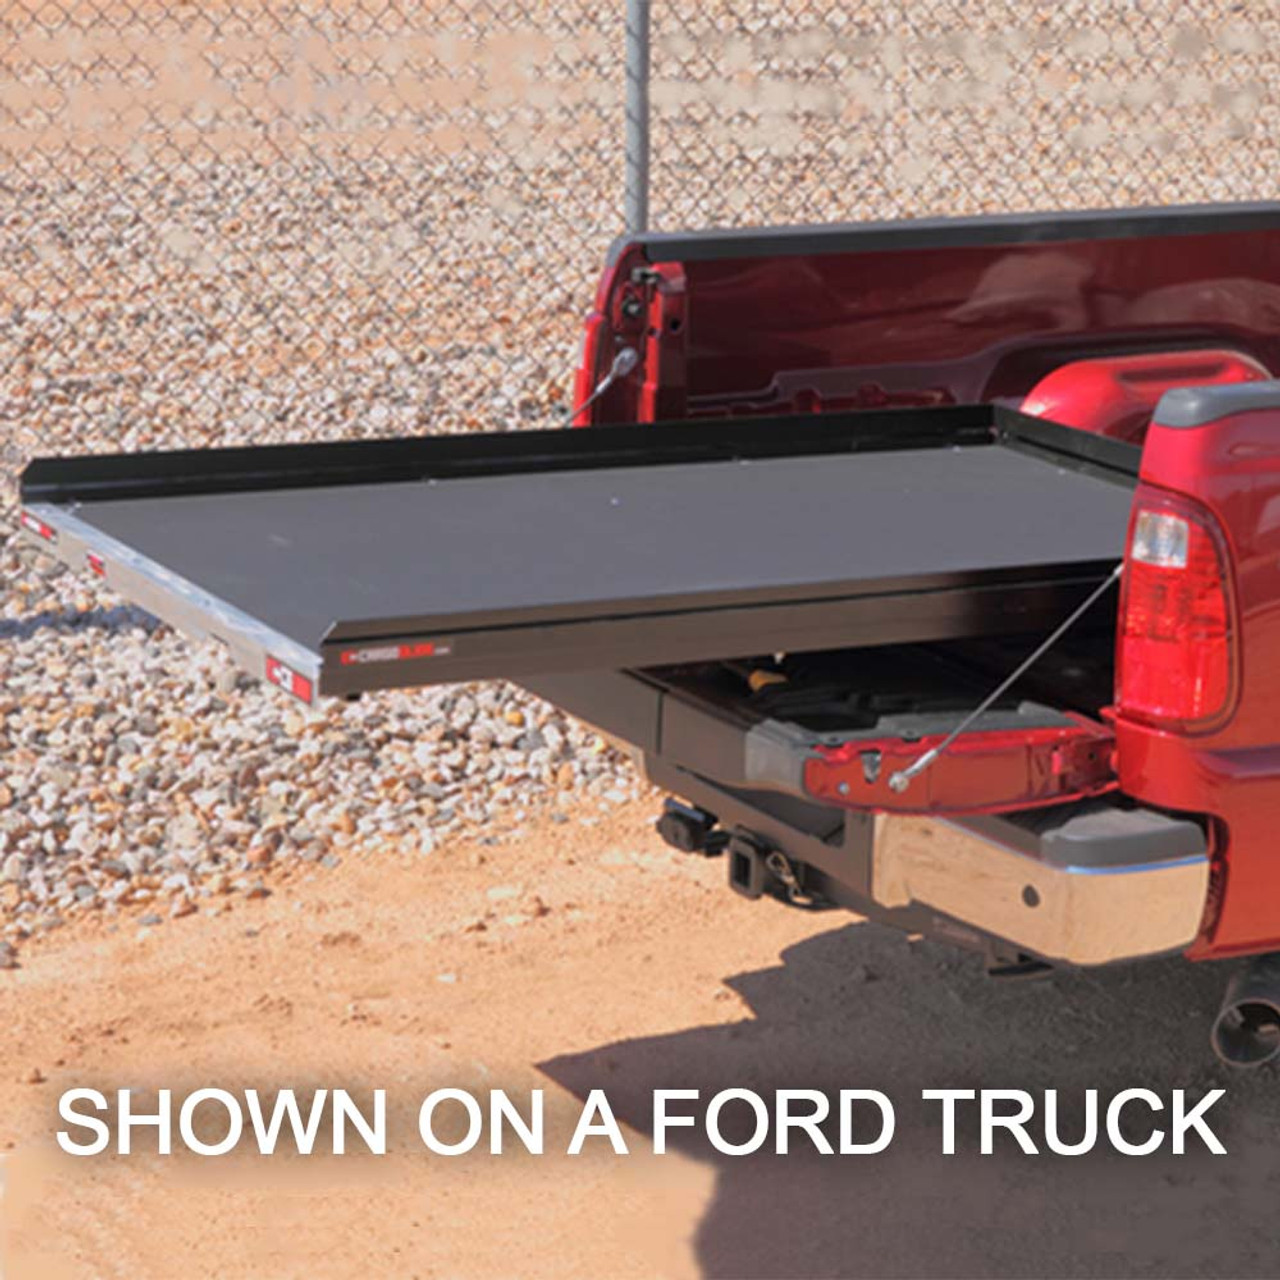 """Cargo-Glide CG1000 Nissan Frontier, Bed Steel Truck-Bed Slide and Extender, 1000 lb Capacity, 65-75% Extension, 4"""" Side Rails, 3.875"""" Deck Height, Includes Installation Kit"""